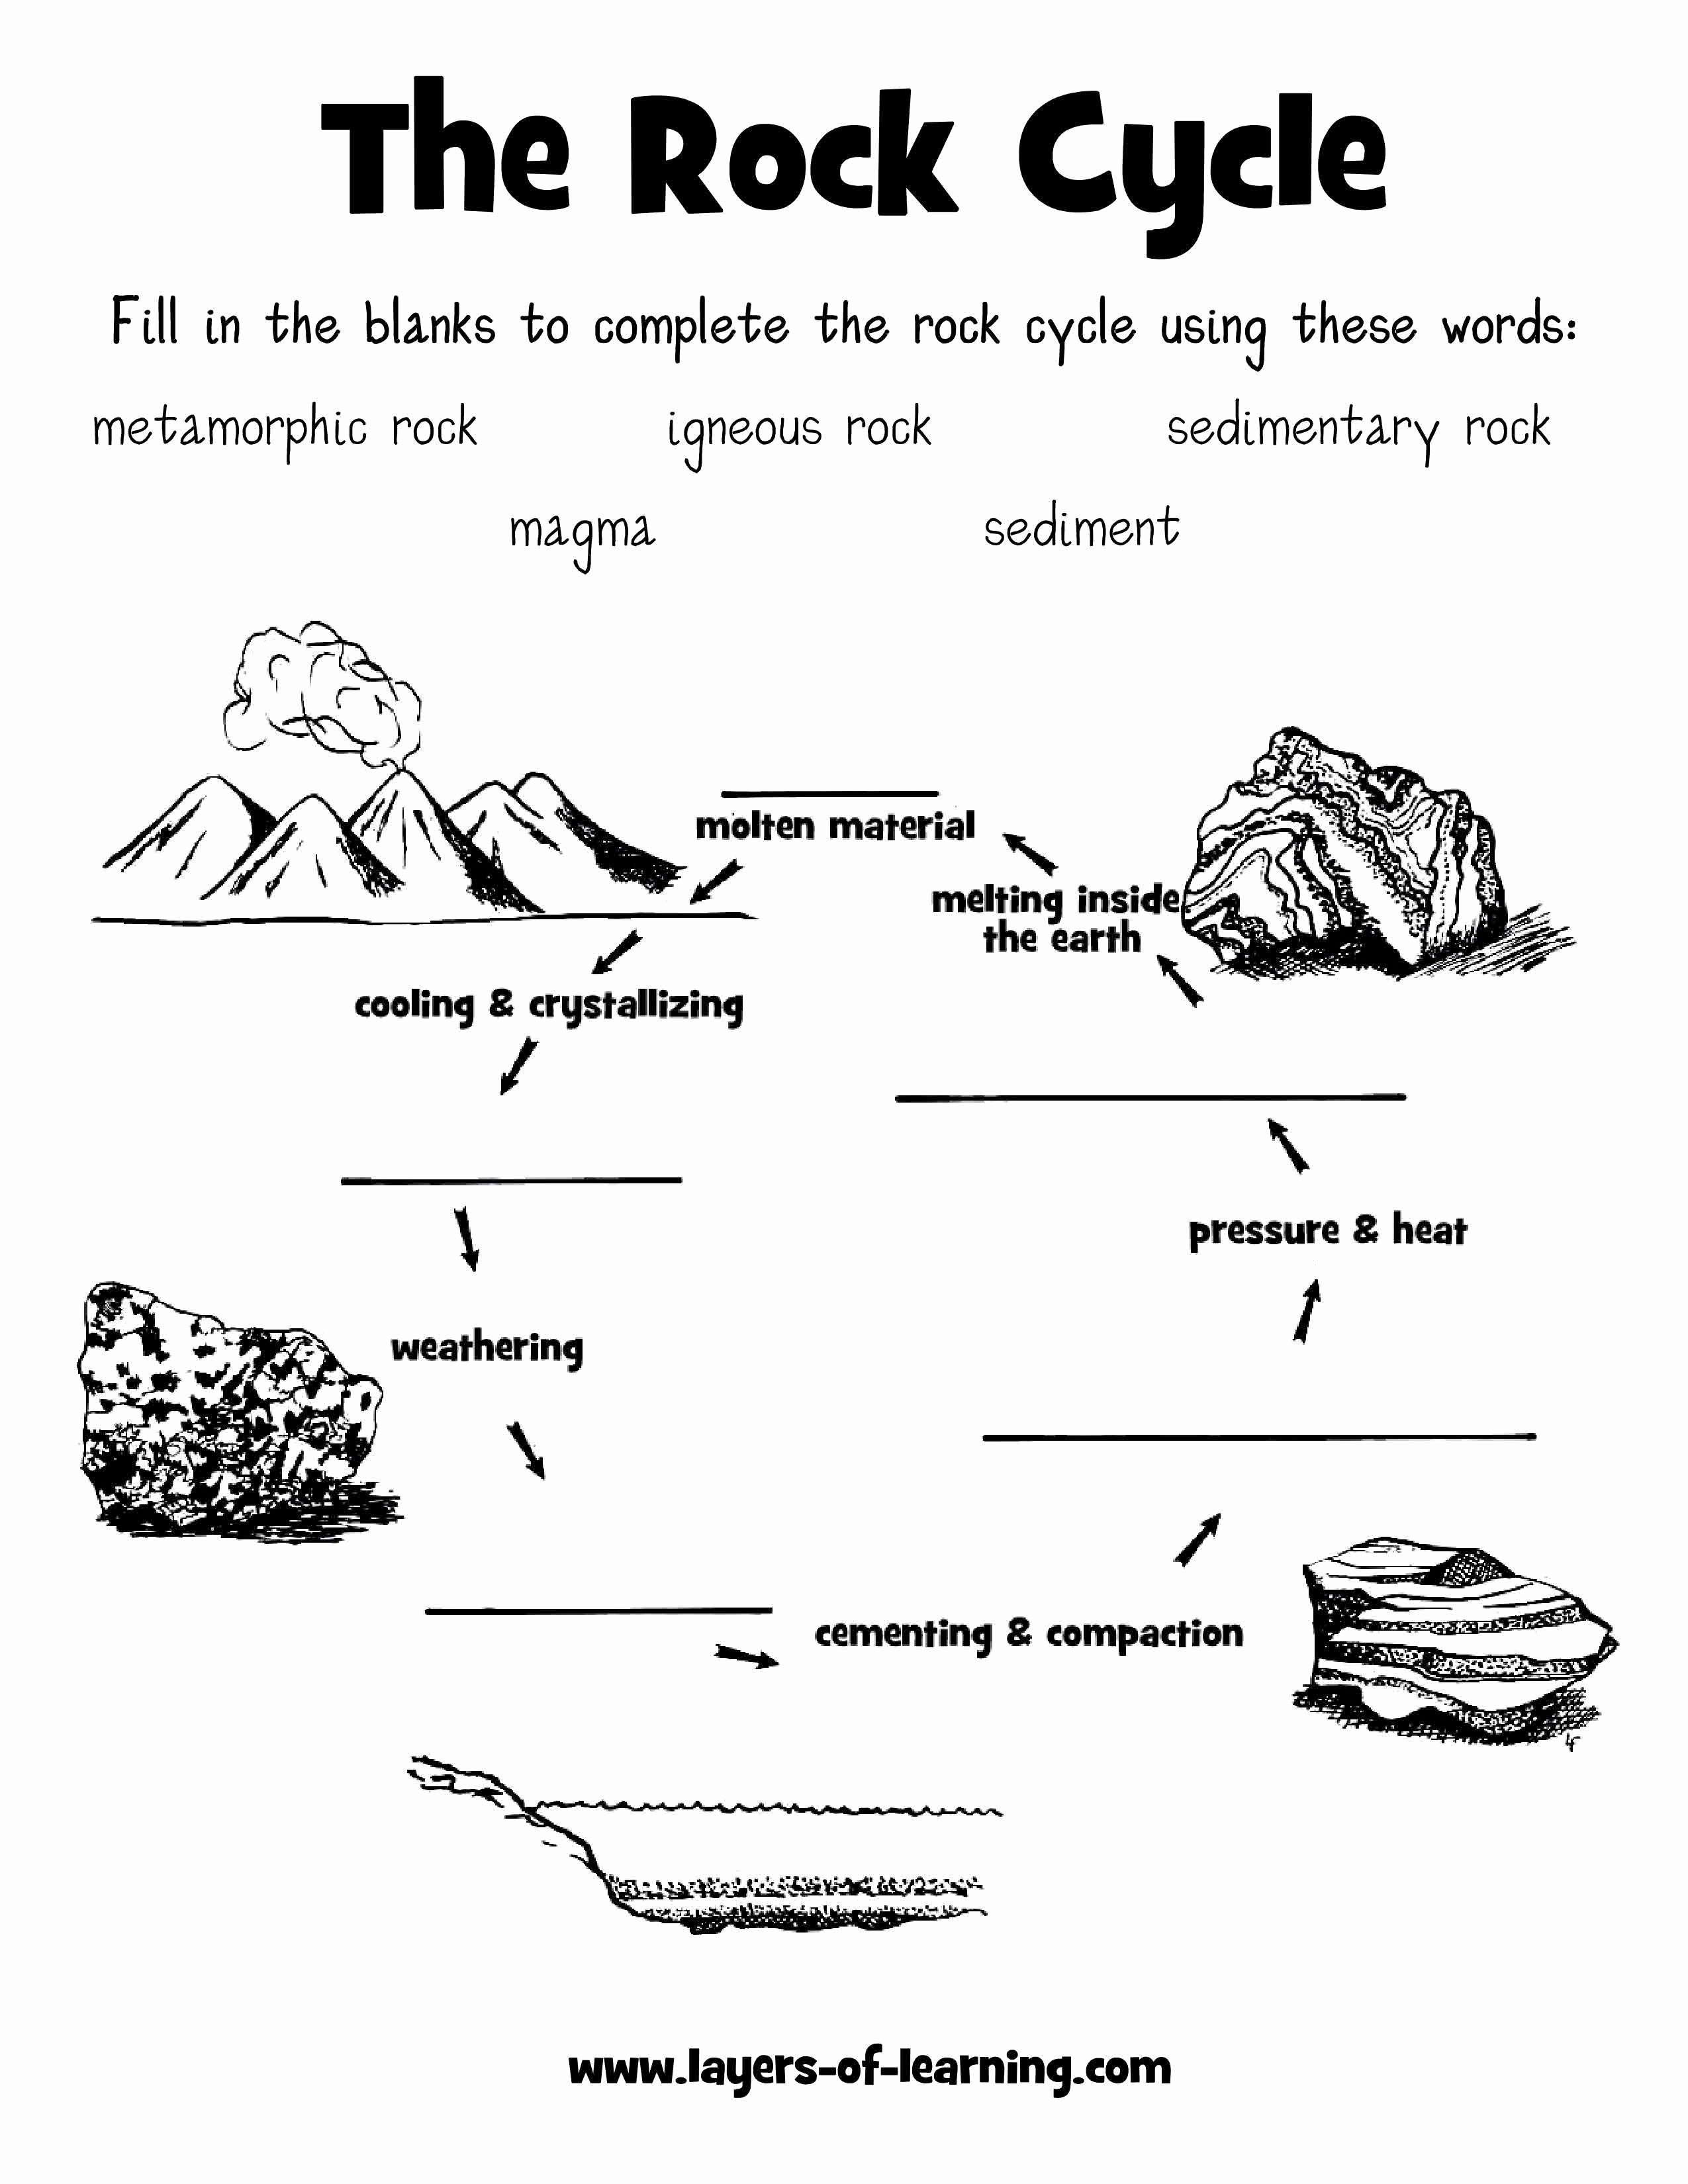 50 Rock Cycle Worksheet Answers